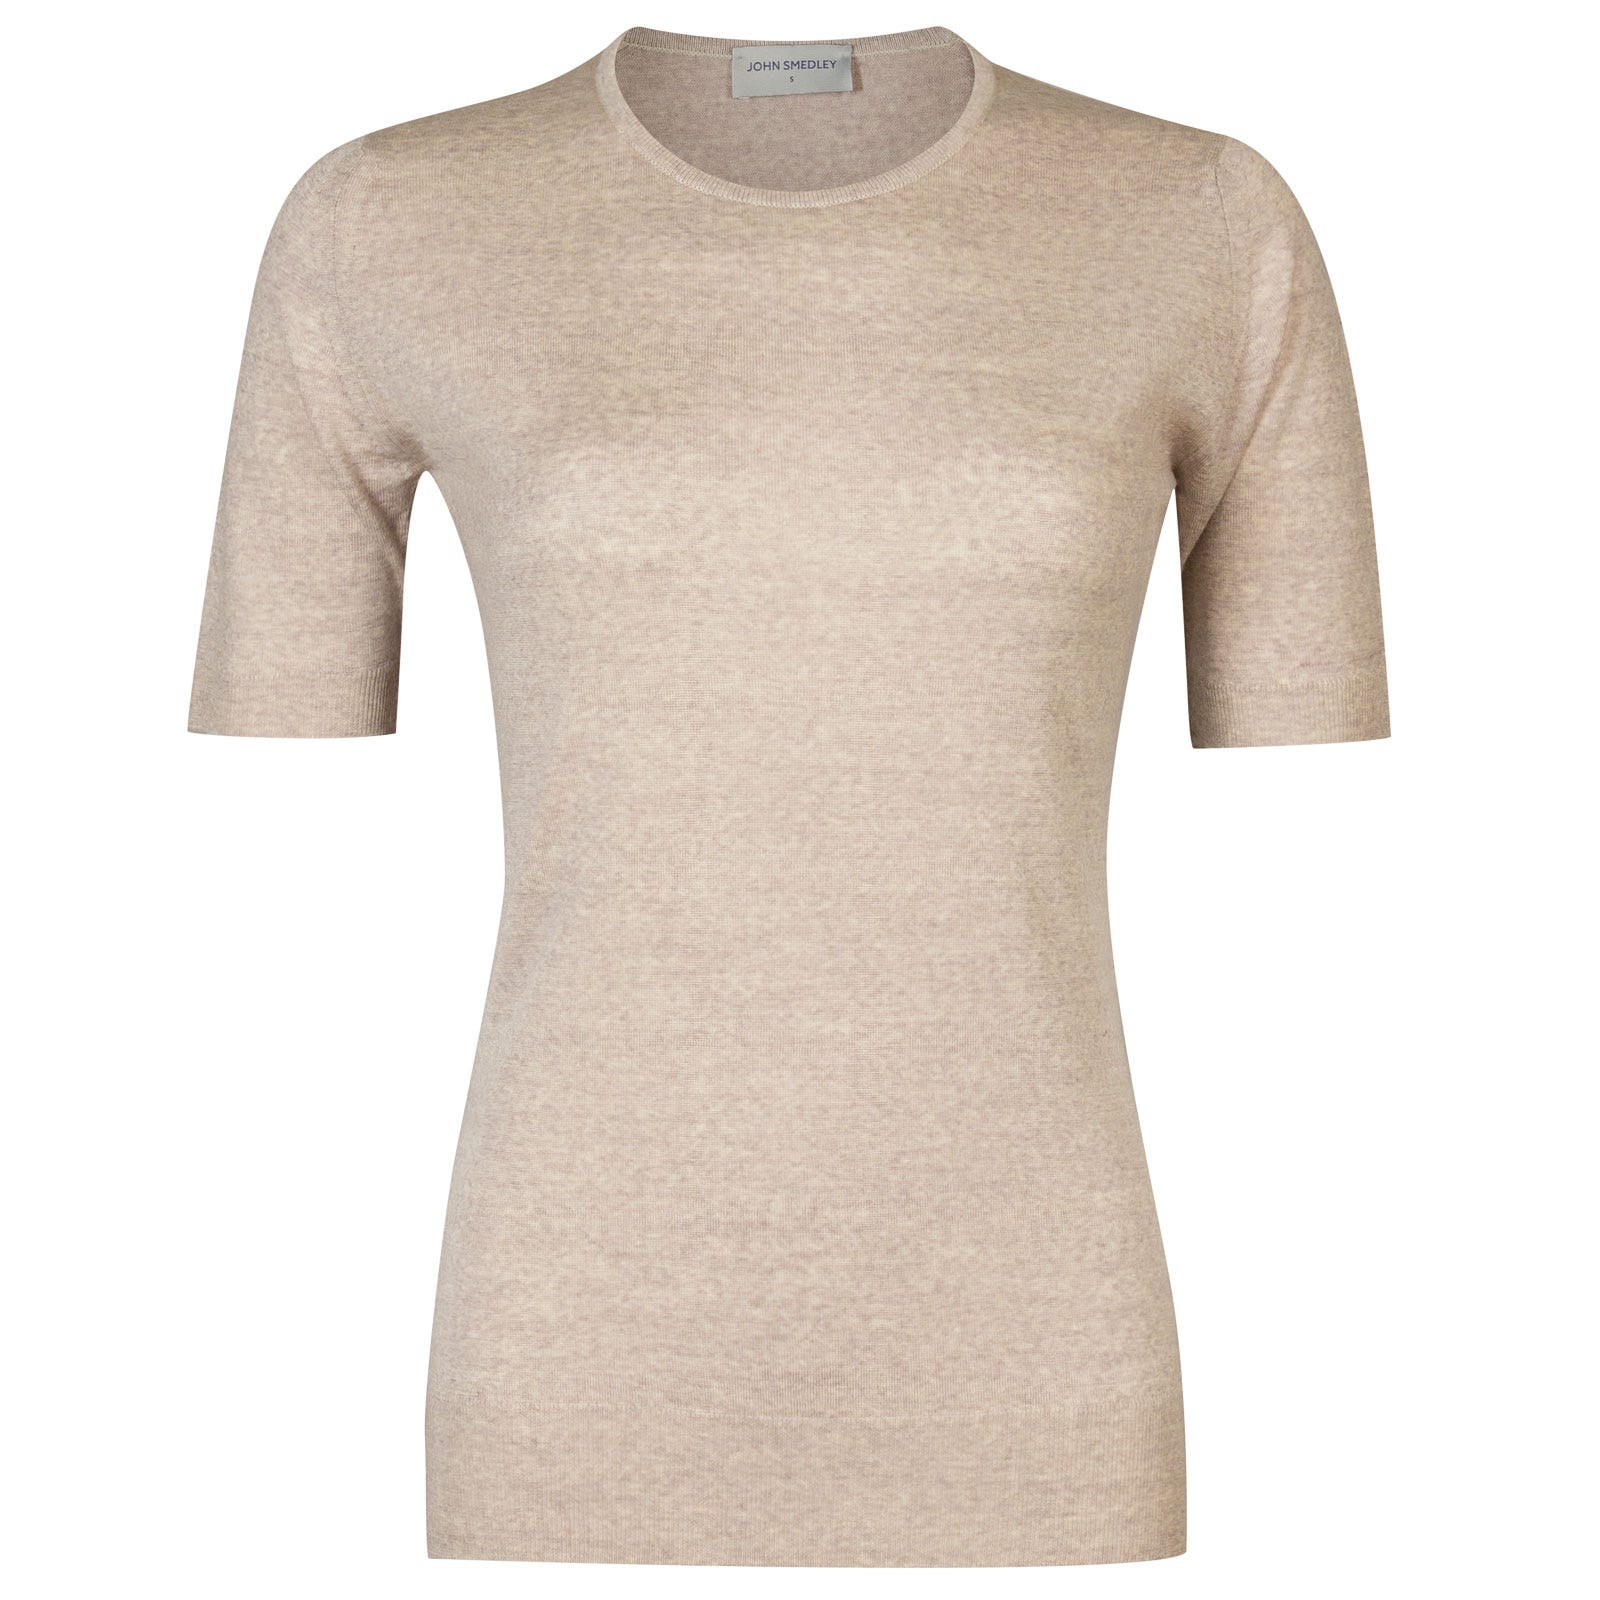 John Smedley rietta Merino Wool Sweater in Eastwood Beige-S